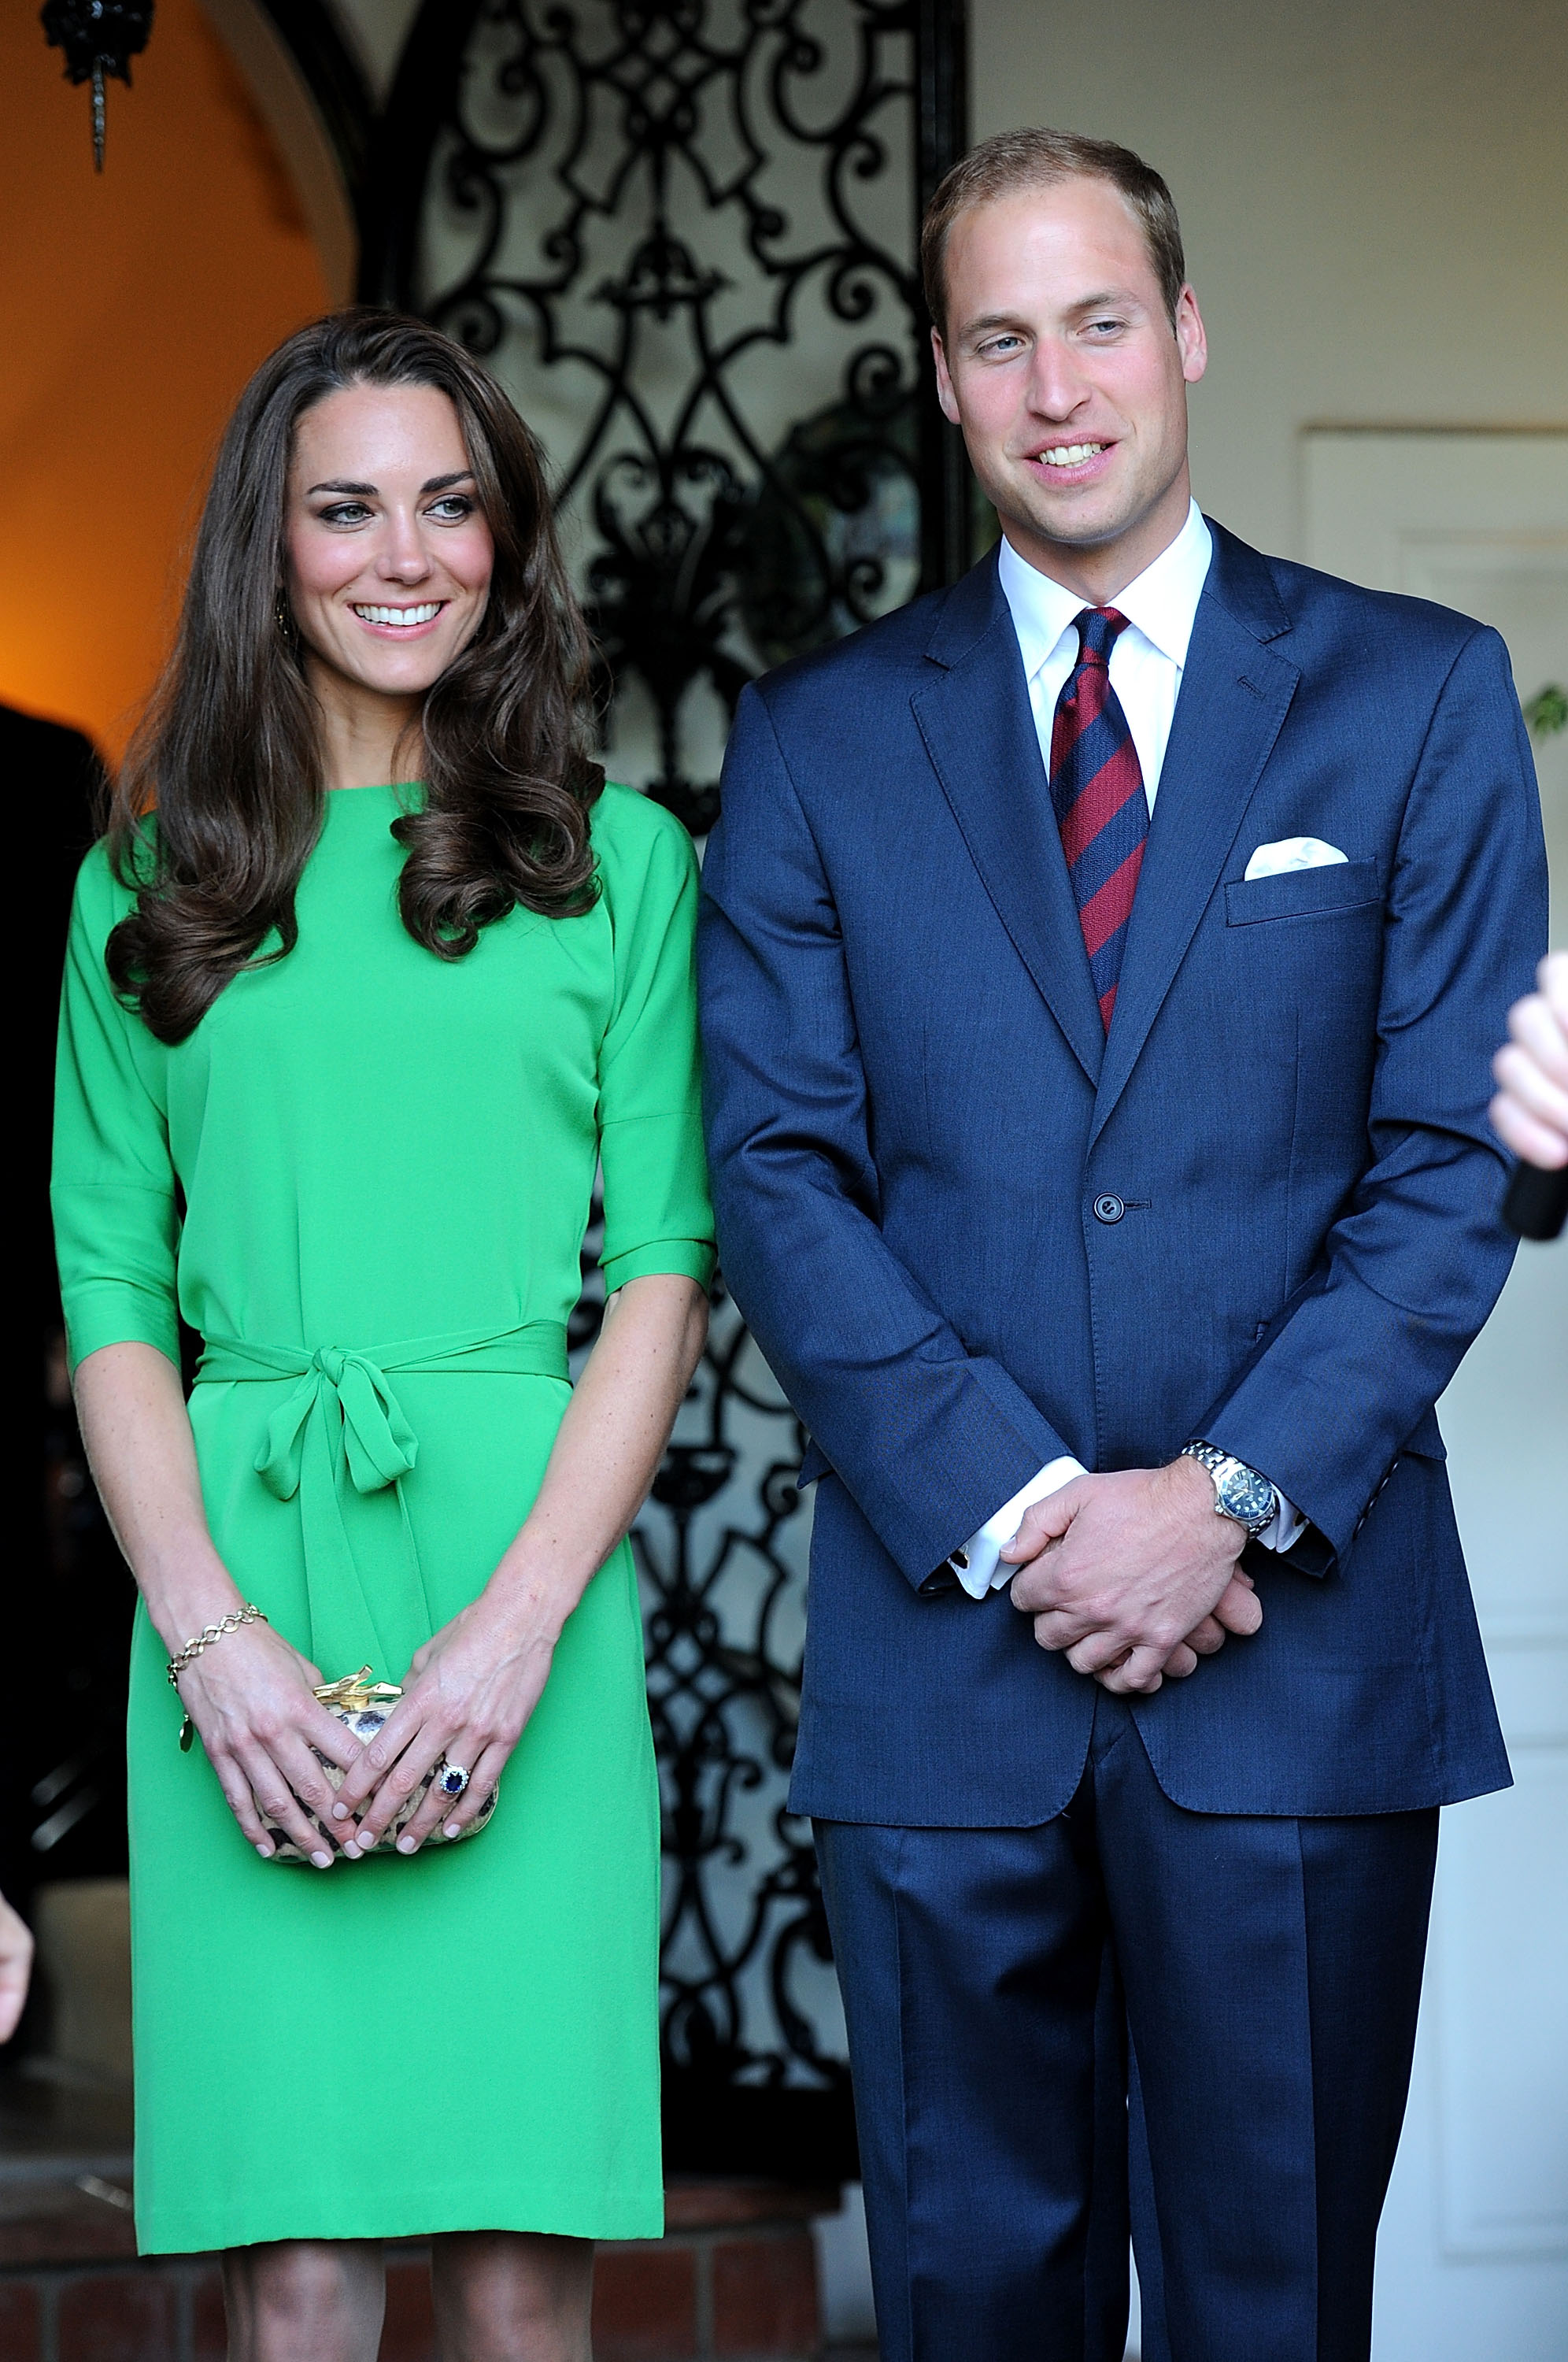 July 8th, 2011 At a private reception held at the British Consul-General's residence in Los Angeles, California.  Kate wears an emerald green, silk-belted Maja dress by Diane Von Furstenberg. Her leopard hard-cased clutch is also Diane von Furstenberg.